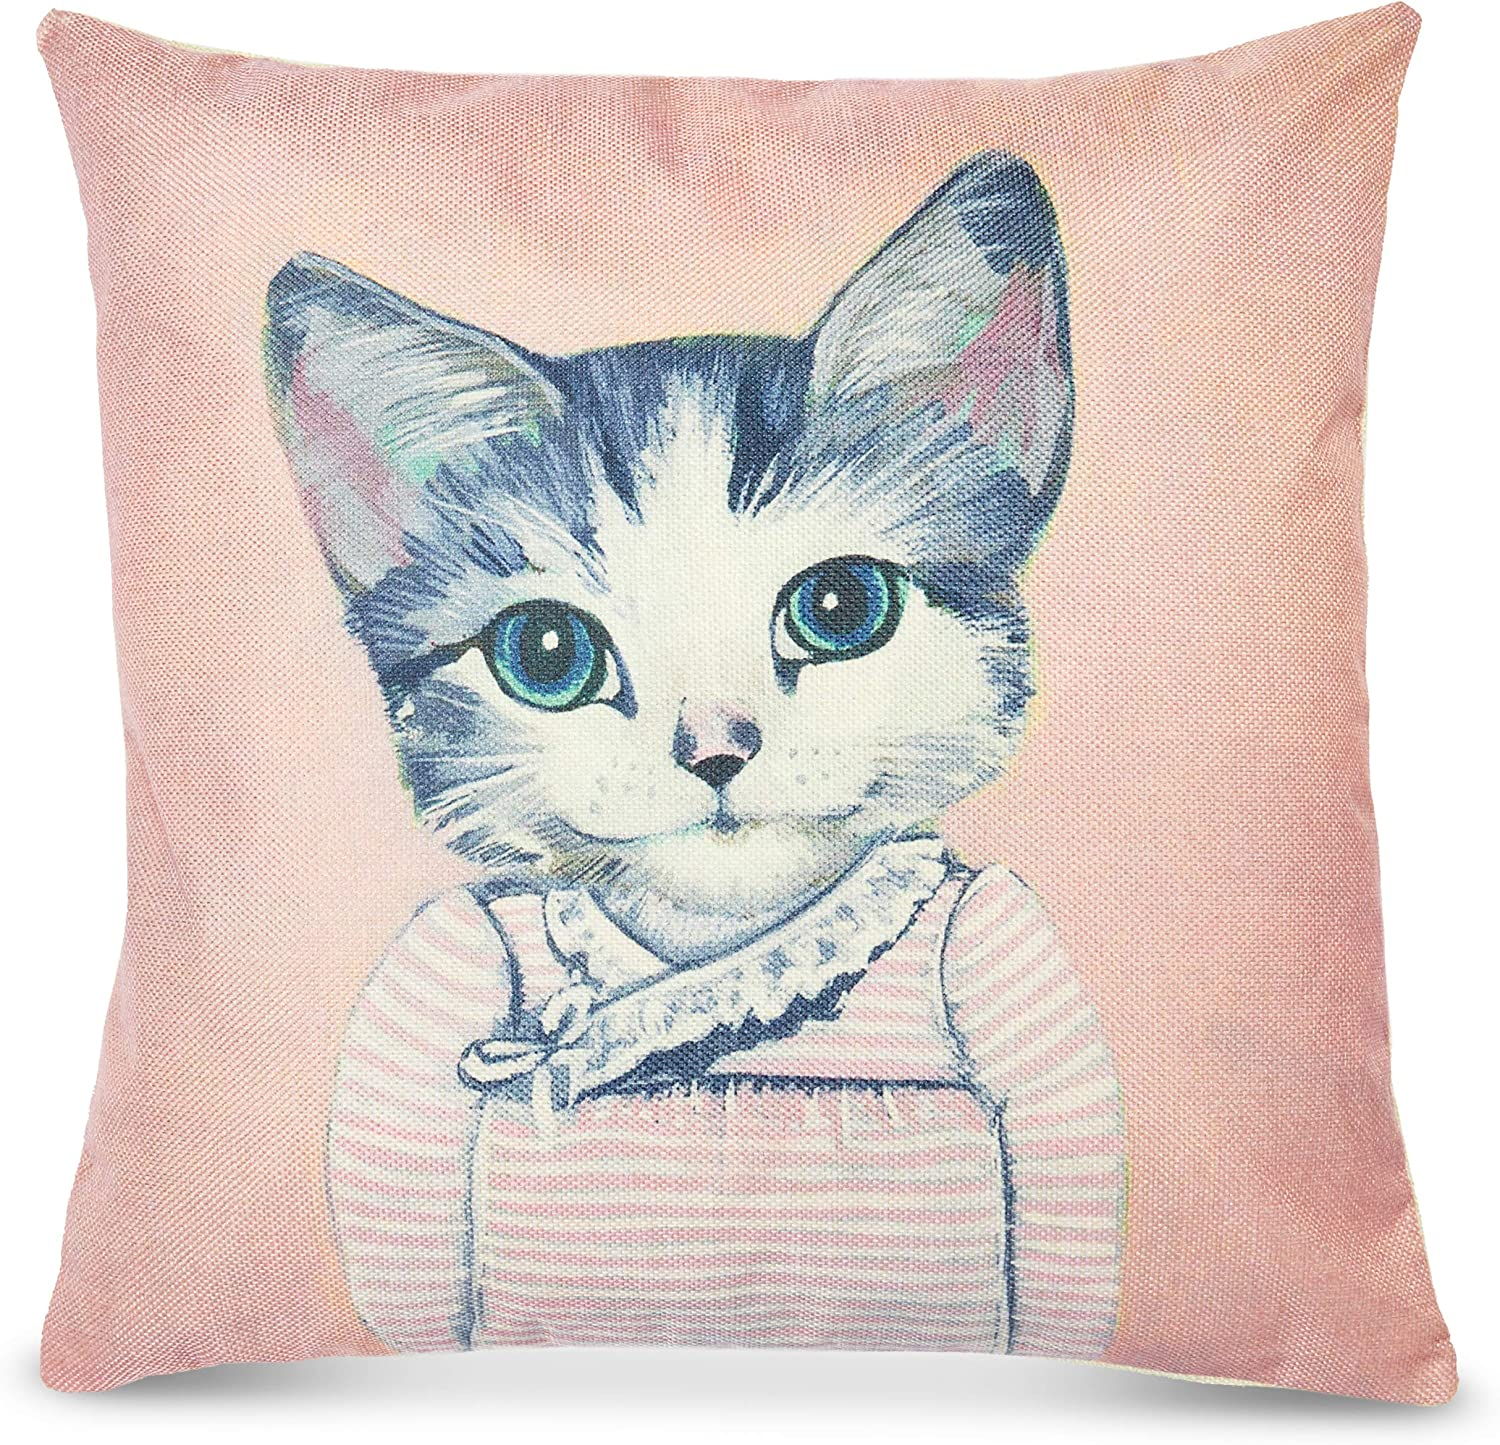 Okuna Outpost Pink Cat Throw Pillow Cover, Home Decor (18 x 18 Inches)